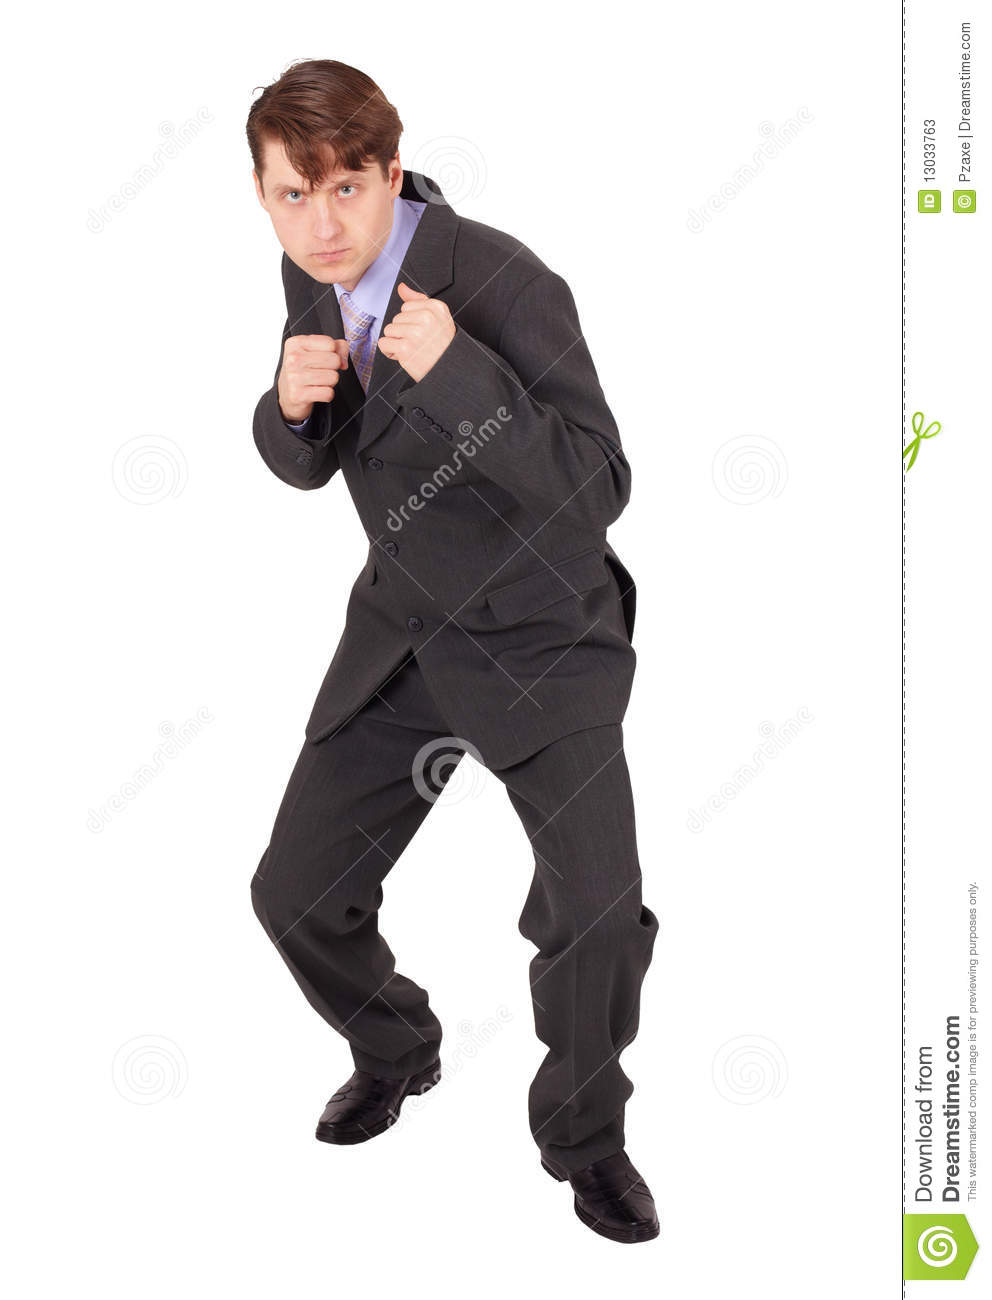 Young Man In Boxing Fighting Stance Stock Photos - Image: 13033763